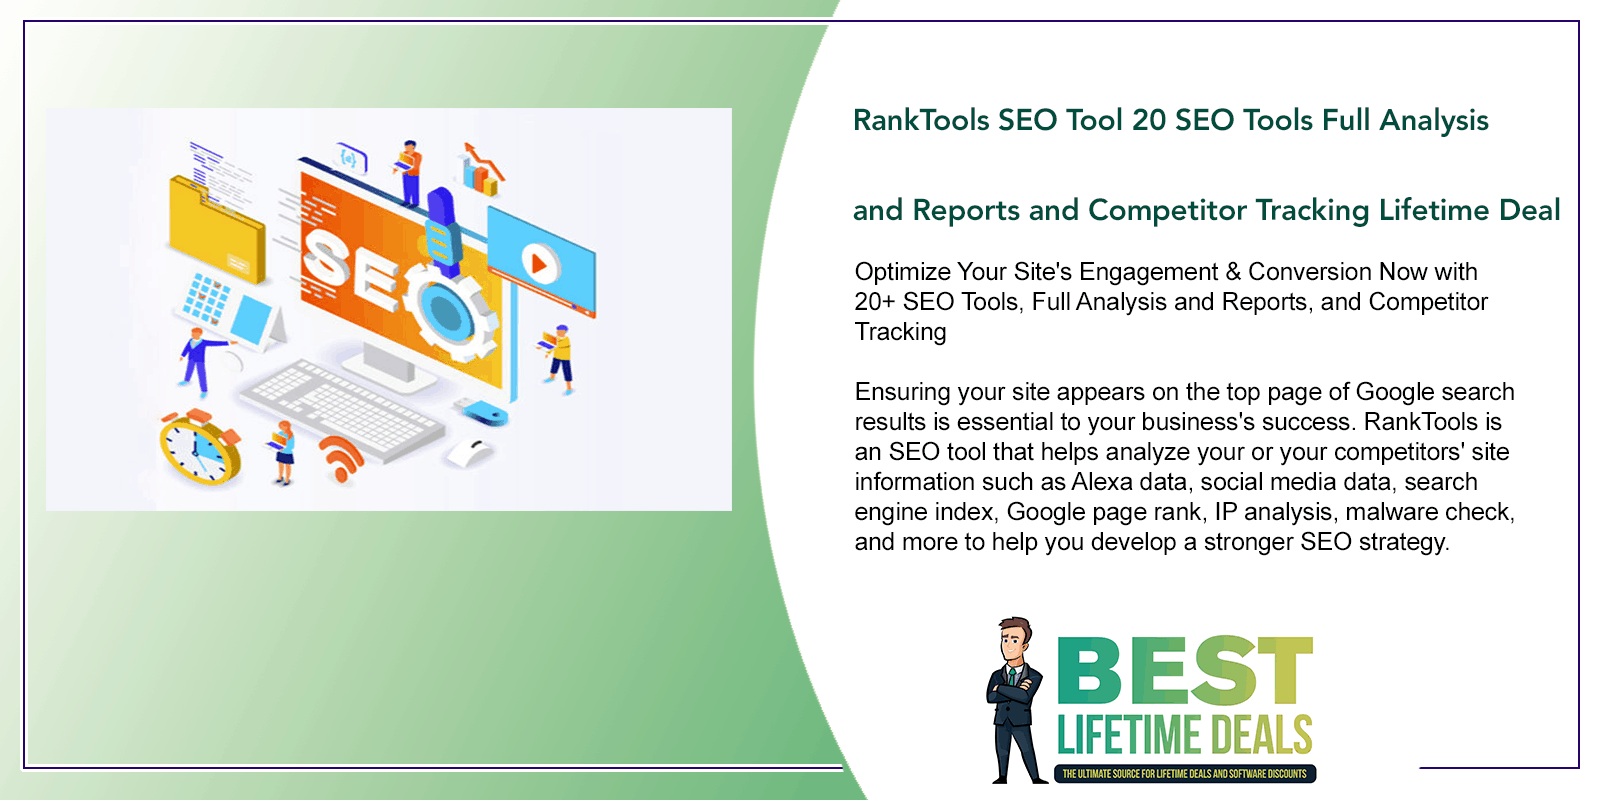 RankTools SEO Tool 20 SEO Tools Full Analysis and Reports and Competitor Tracking Featured Image